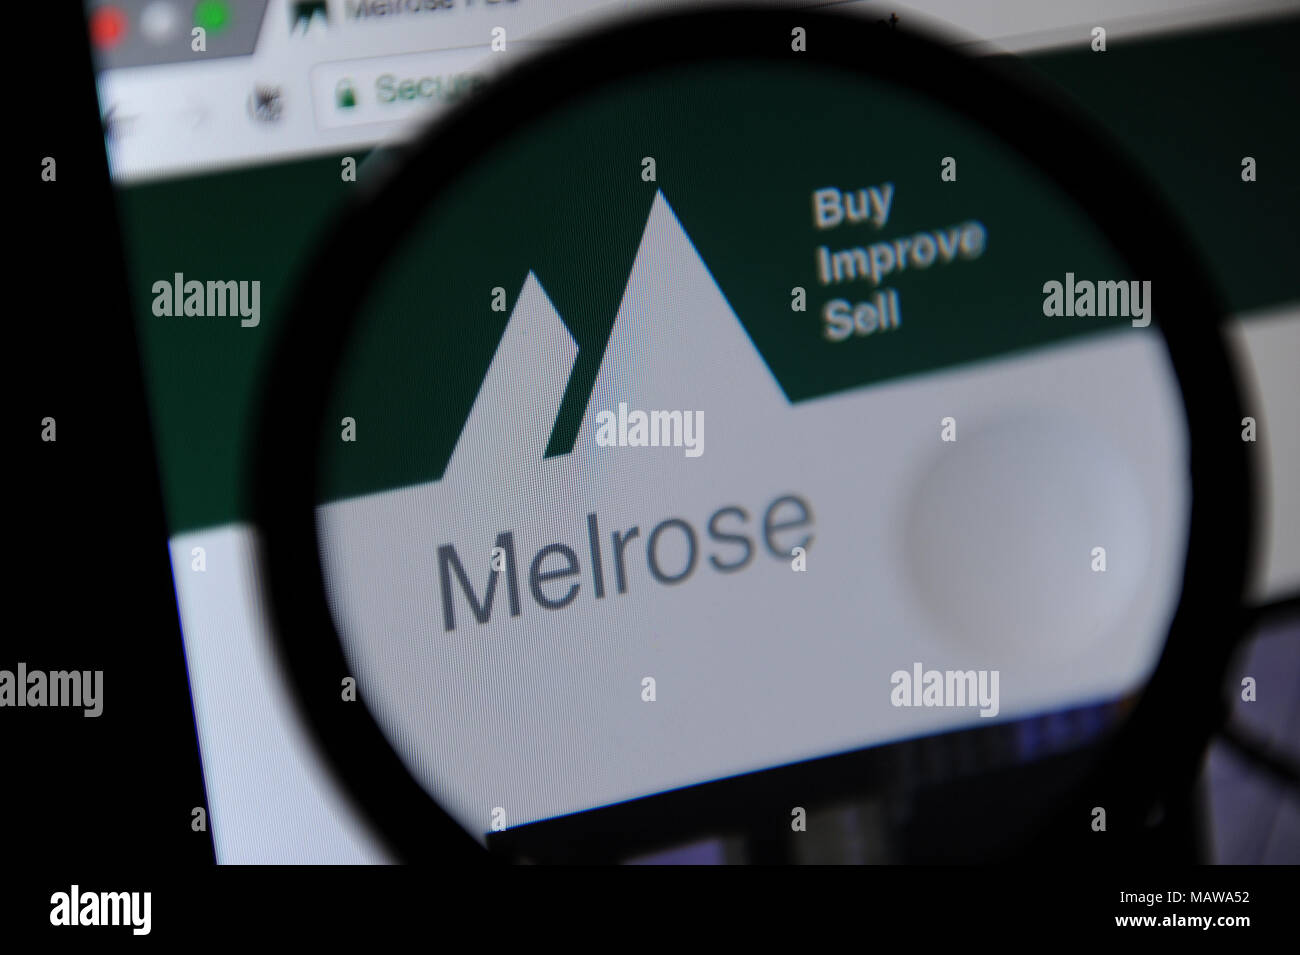 Website of Melrose, a British based investment company - Stock Image